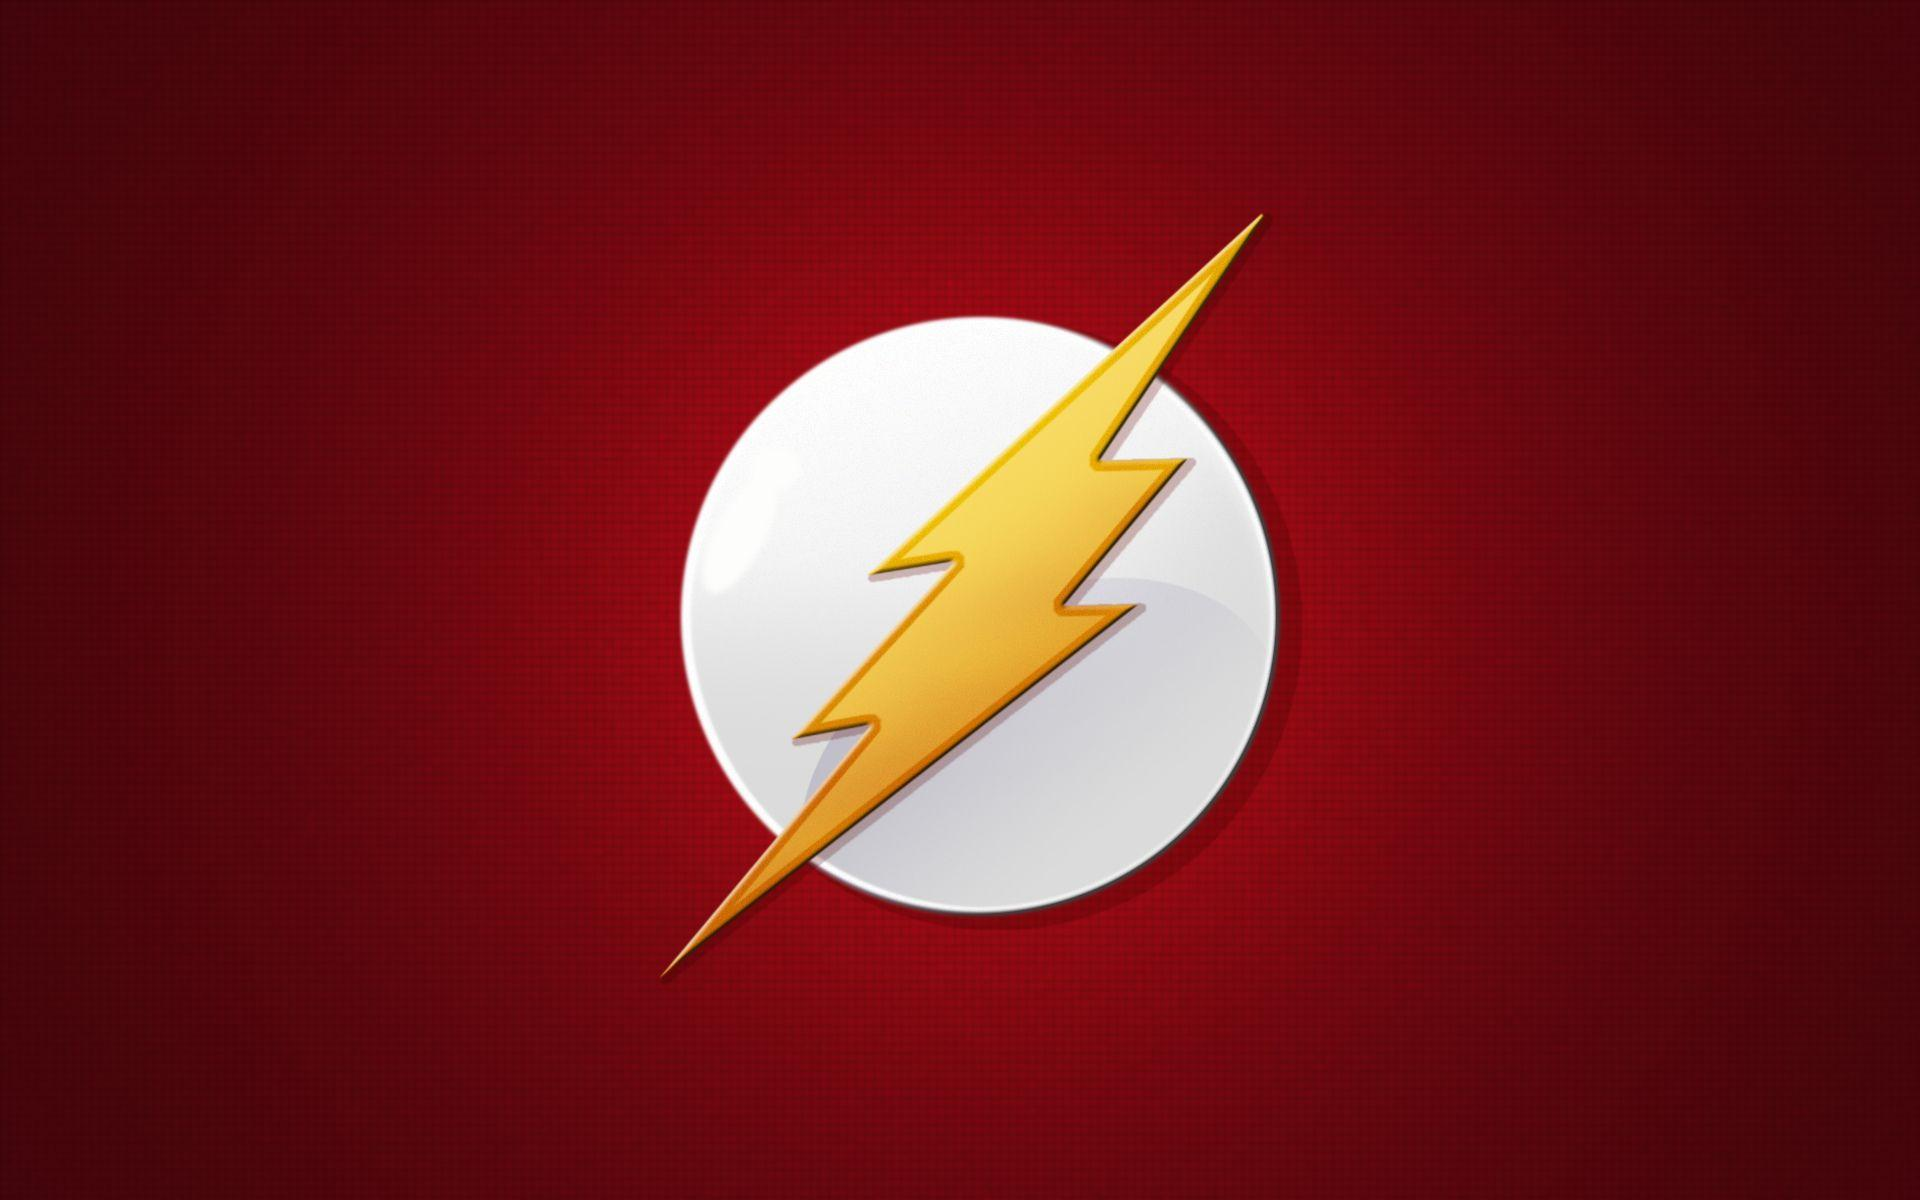 179 Flash HD Wallpapers | Backgrounds - Wallpaper Abyss